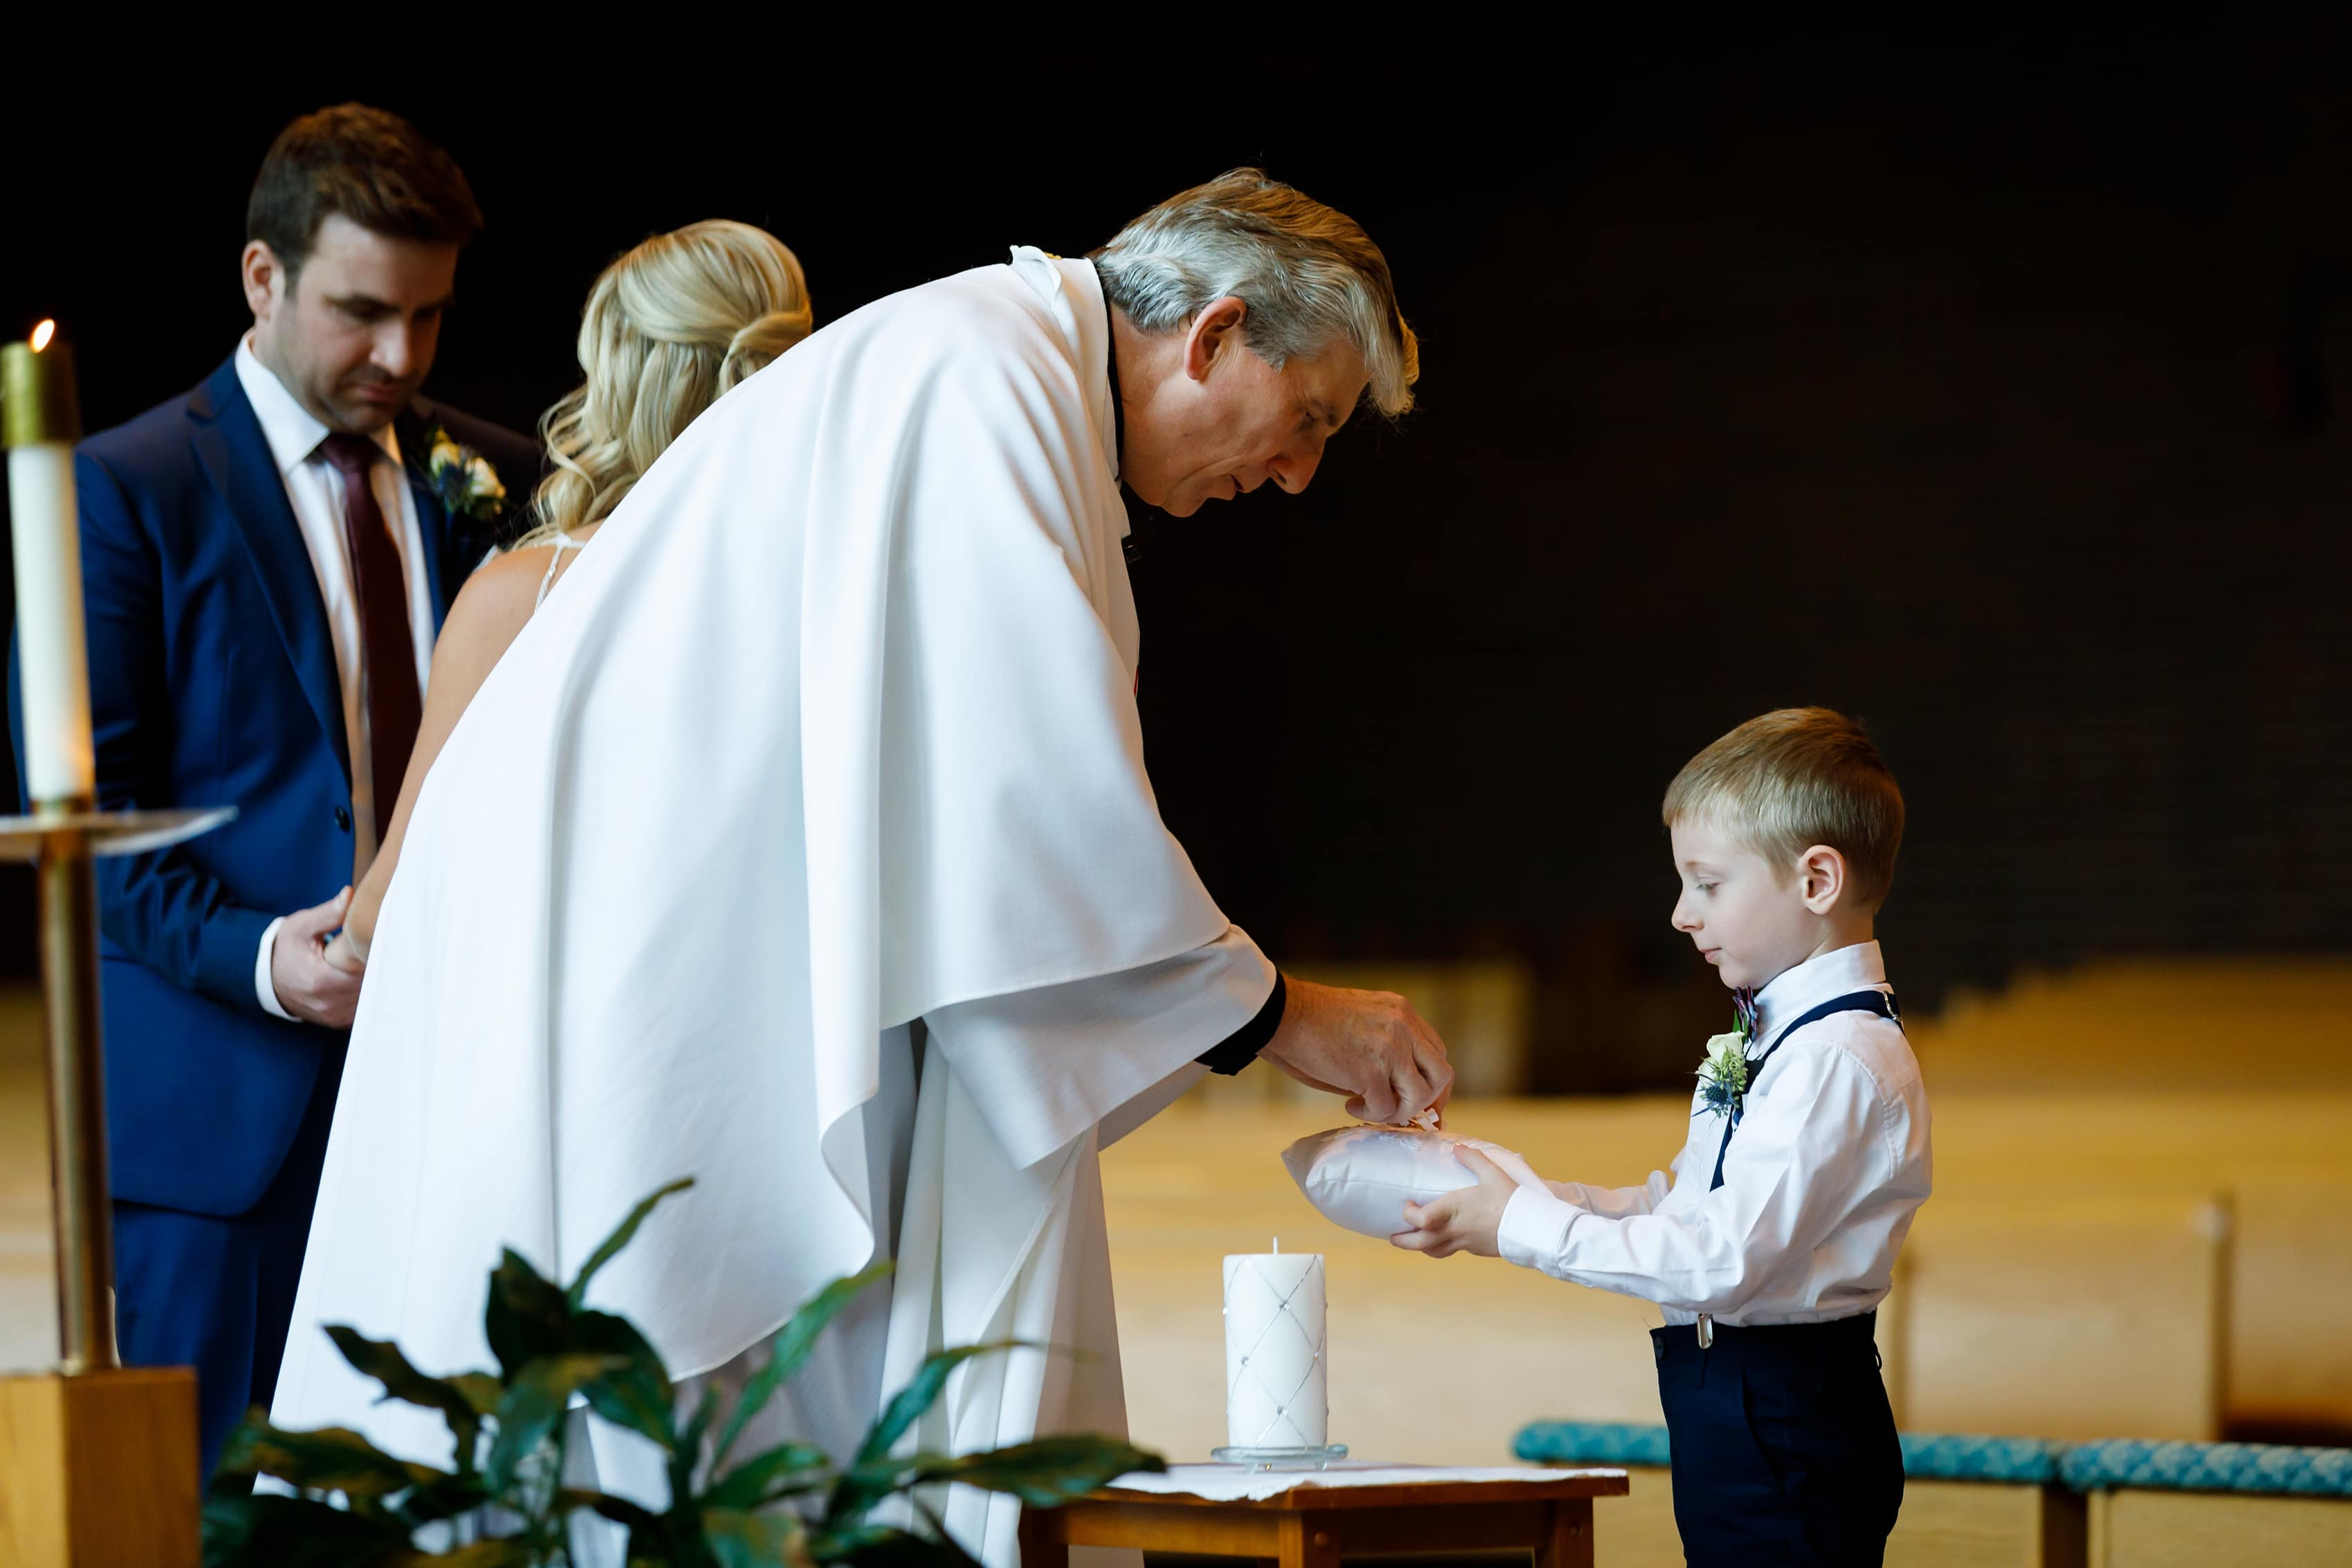 Ring bearer delivers wedding rings during wedding ceremony at Cross in the Woods in Indian River, Michigan